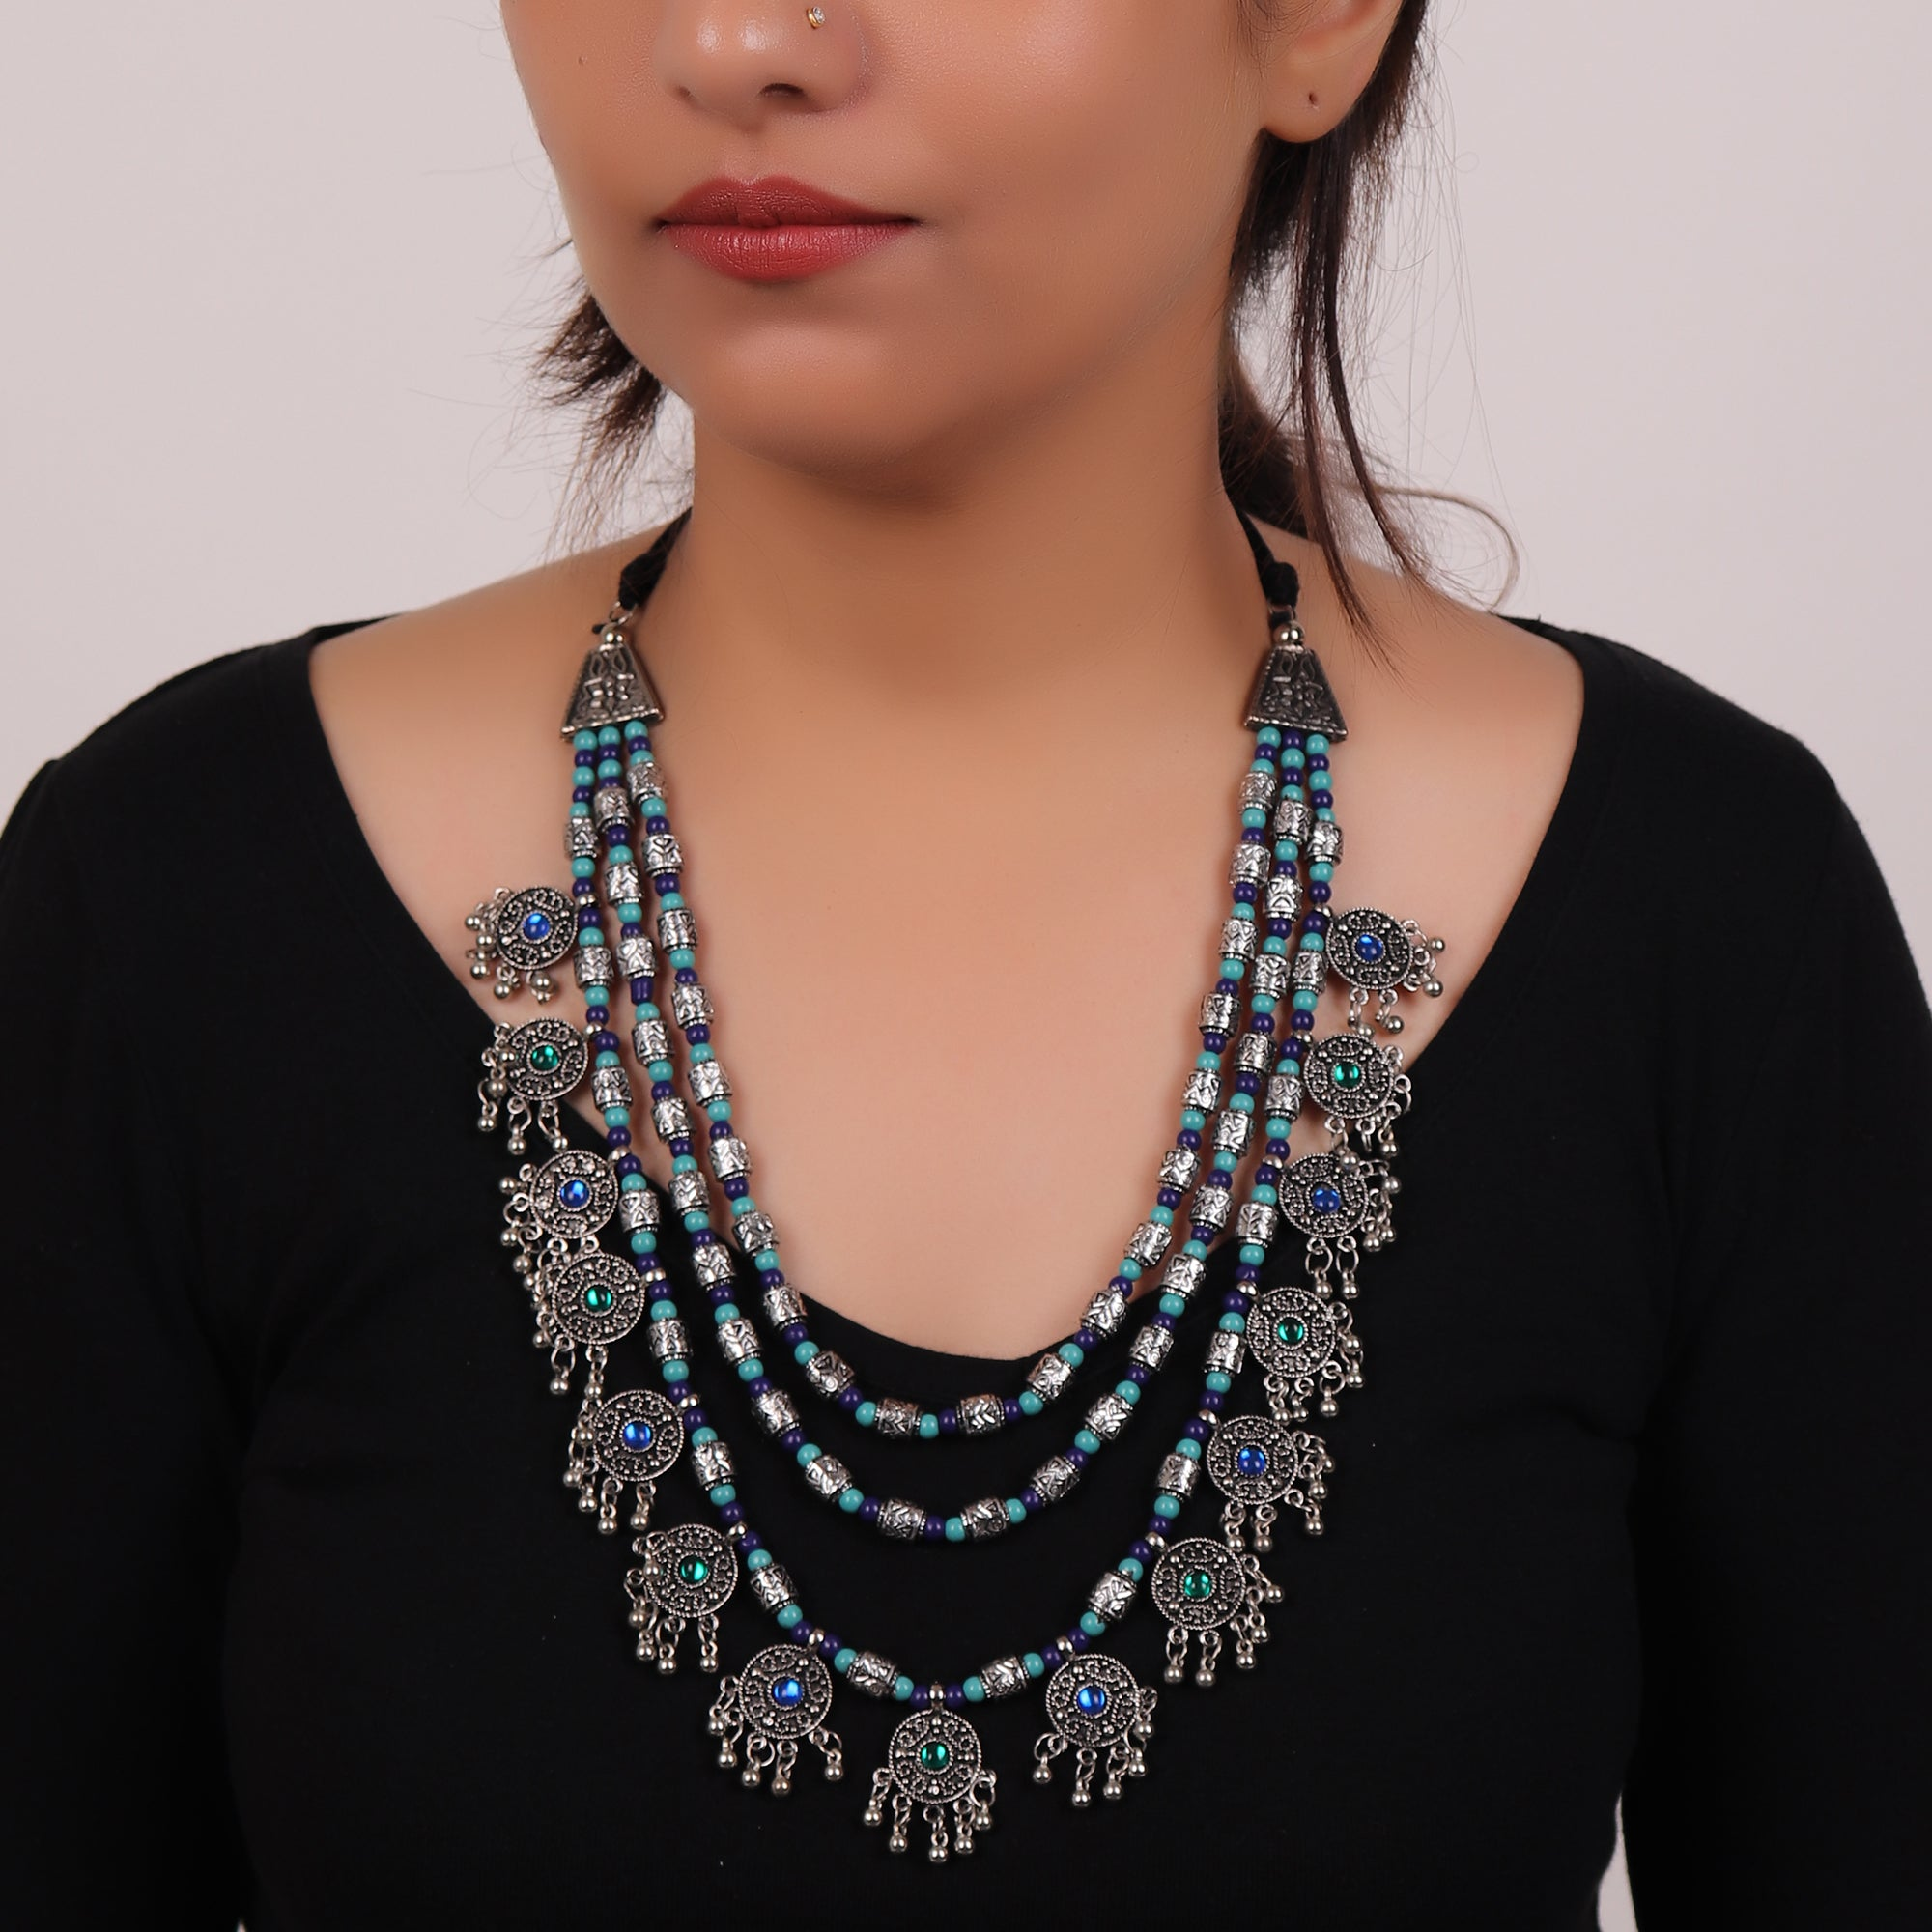 Necklace,The Cookie Layered Necklace in Midnight Blue & Turquoise - Cippele Multi Store